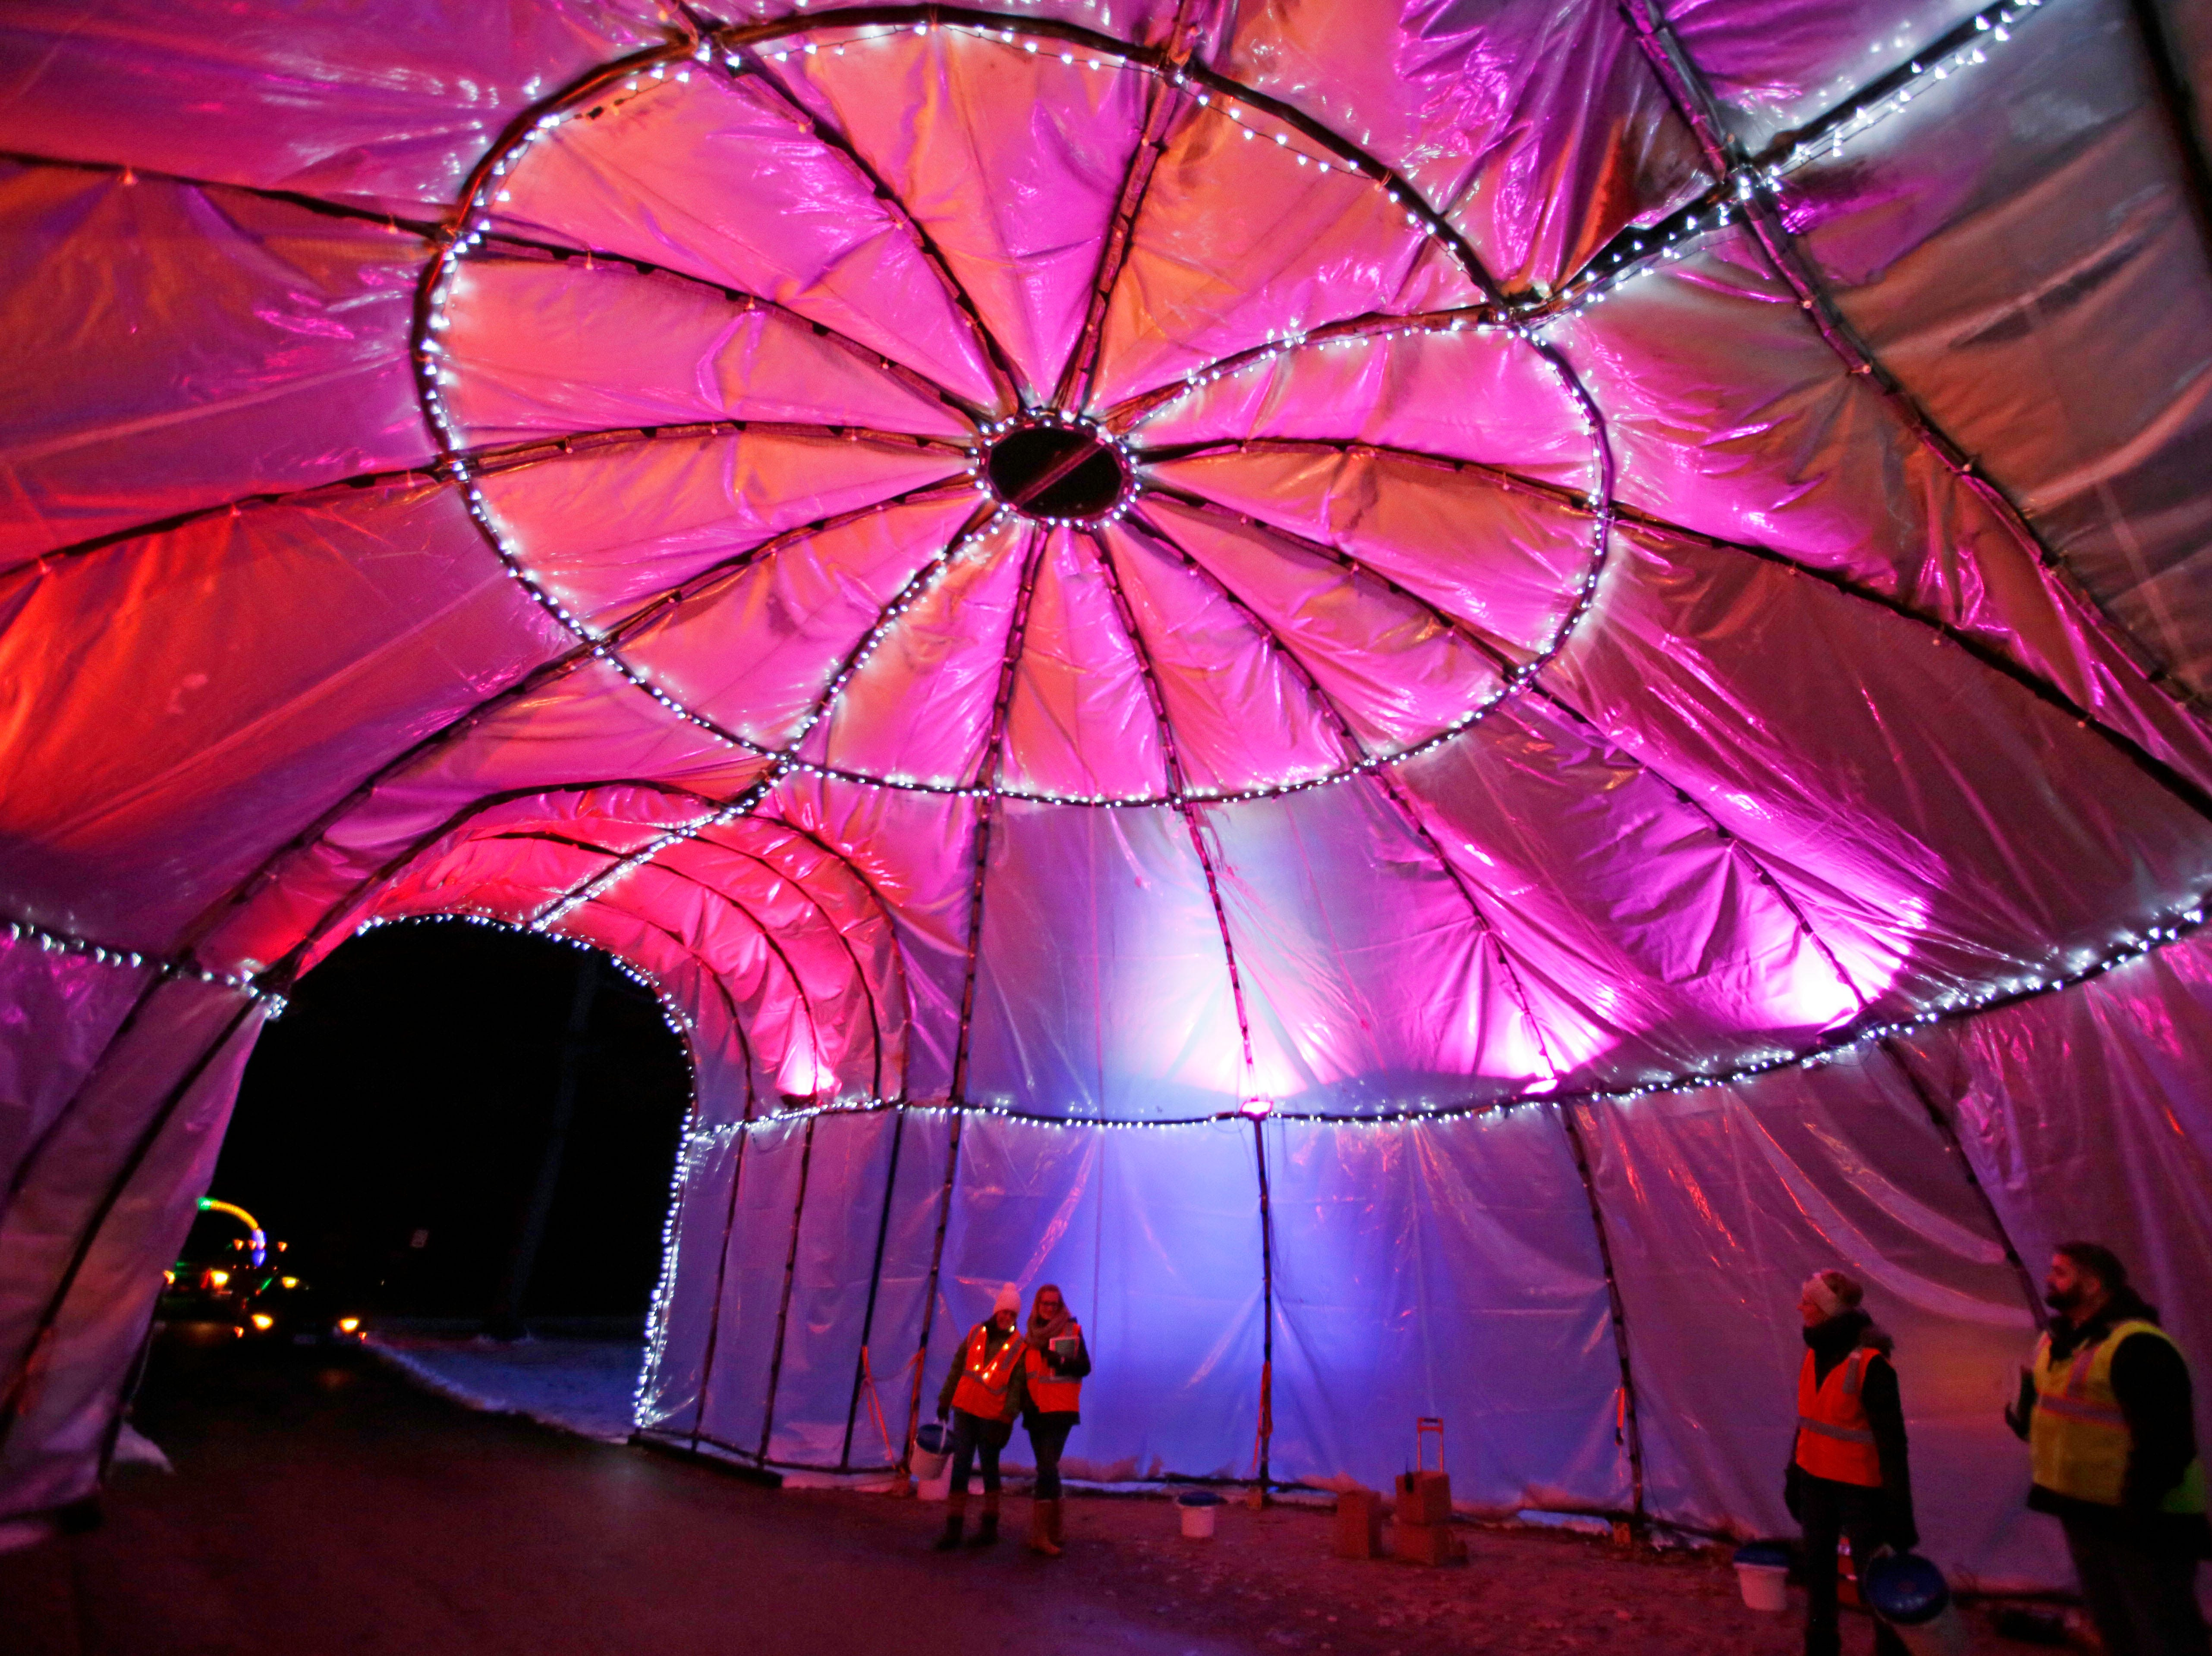 A big igloo serves as an exit point for cash donations at Making Spirits Bright at Evergreen Park, Friday, November 30, 2018, in Sheboygan, Wis.